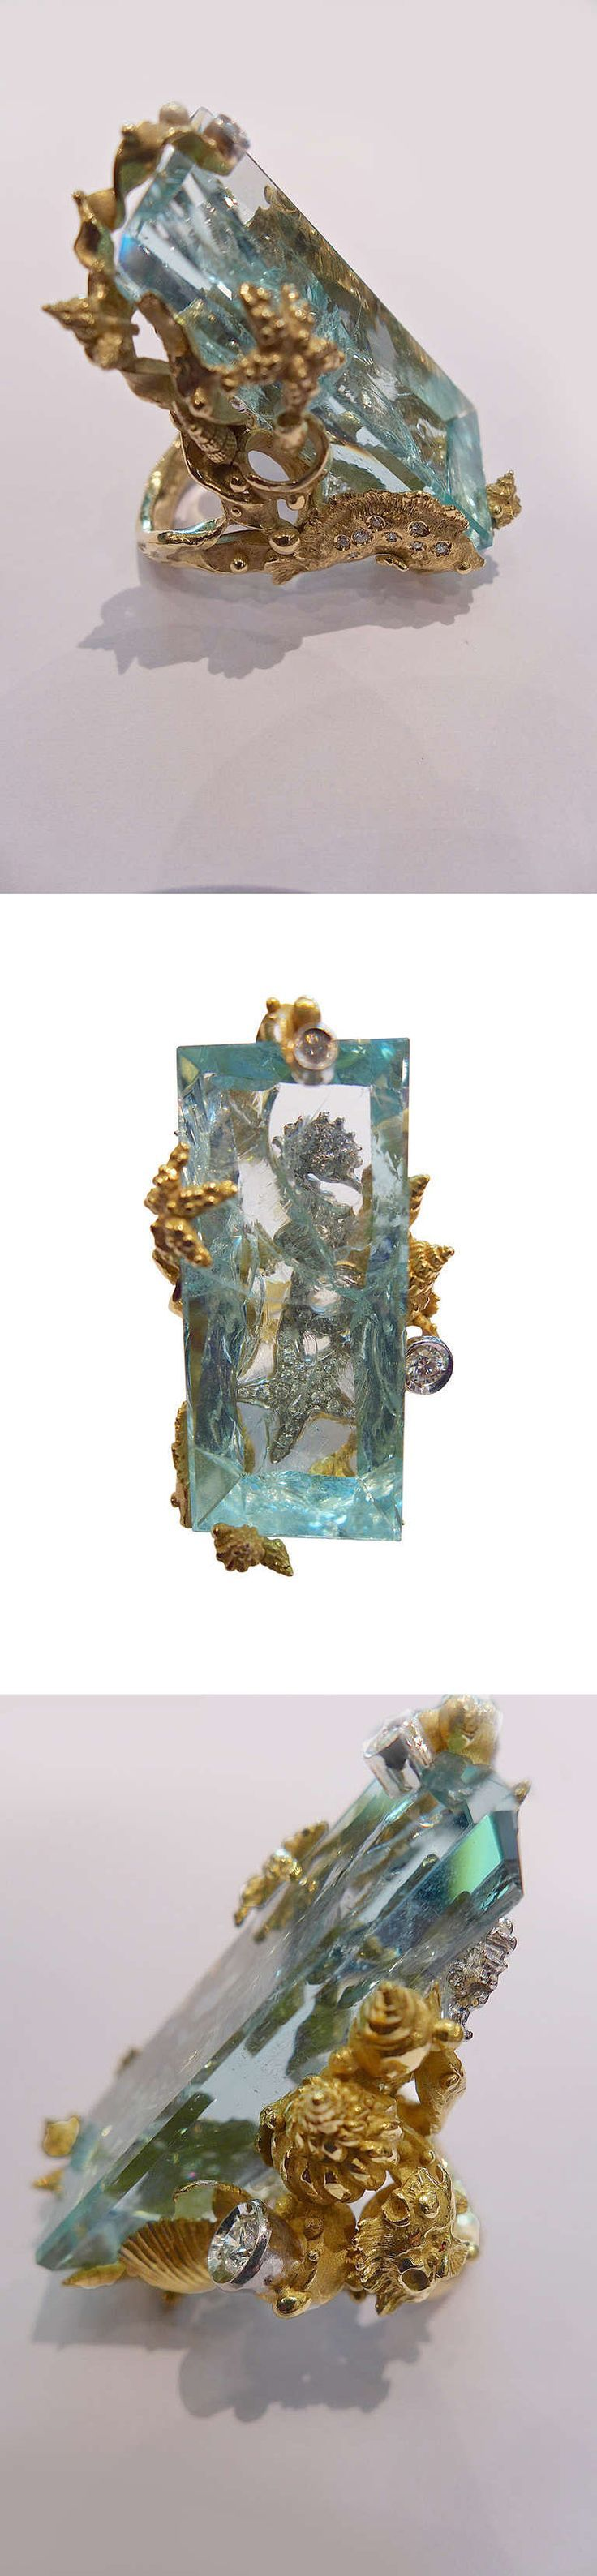 Yellow gold Massimo Izzo ring representing sea life, aquamarine and diamonds. A spectacular, unique and exceptional Massimo Izzo ring representing sea life. An enormous rectangular aquamarine decorated behind the transparency with a sea star, a seahorse and several shells set with diamonds. C 2004. [This is definitely a statement piece. While I would not wear it myself, it's so over the top and unique, I had to include it.]